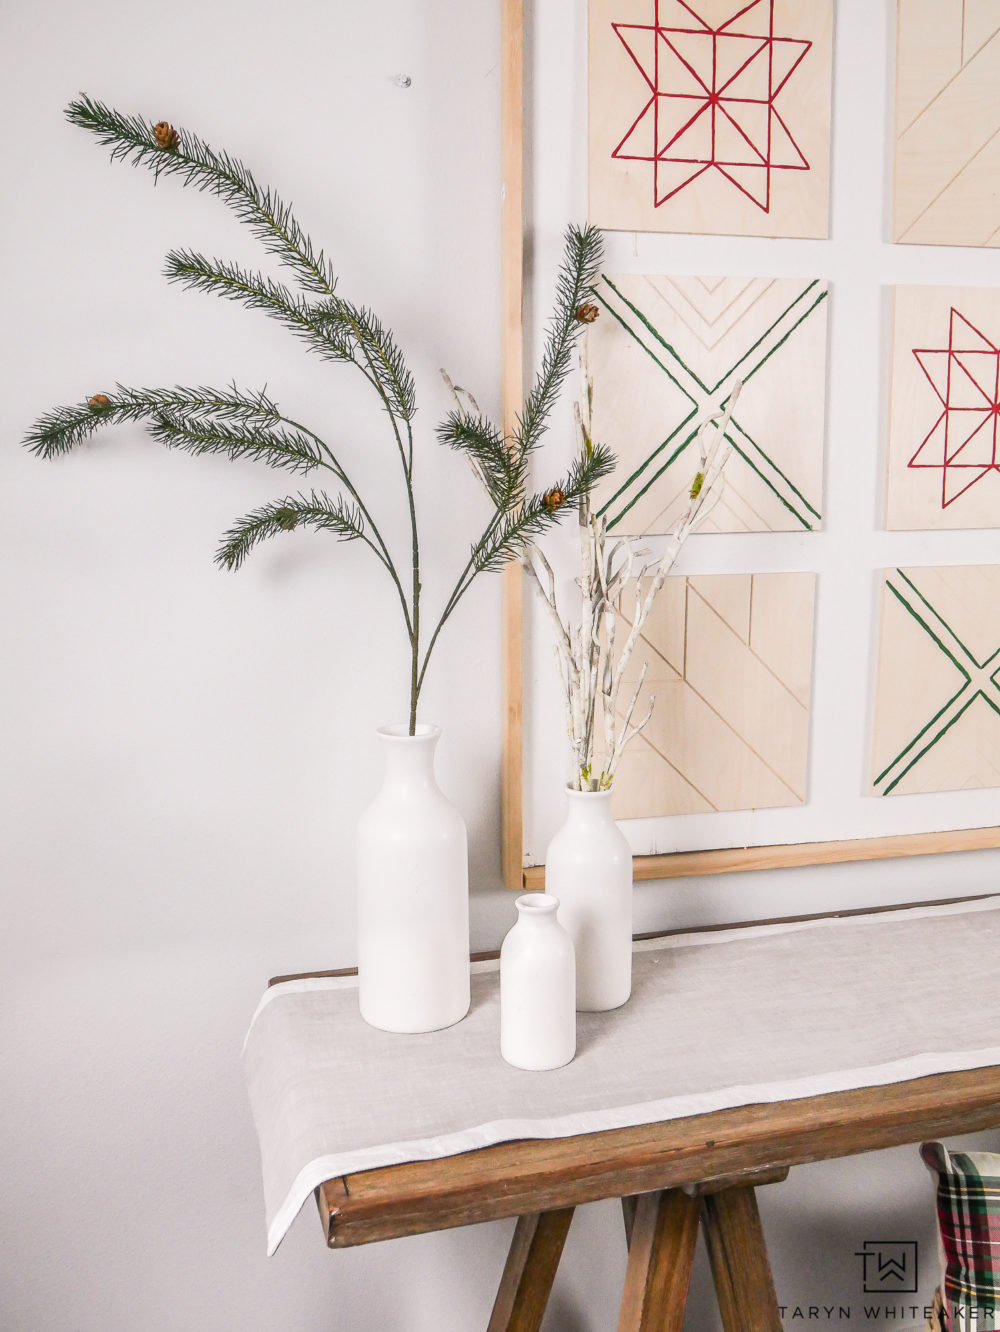 Such a pretty minimalist Christmas Decor Display